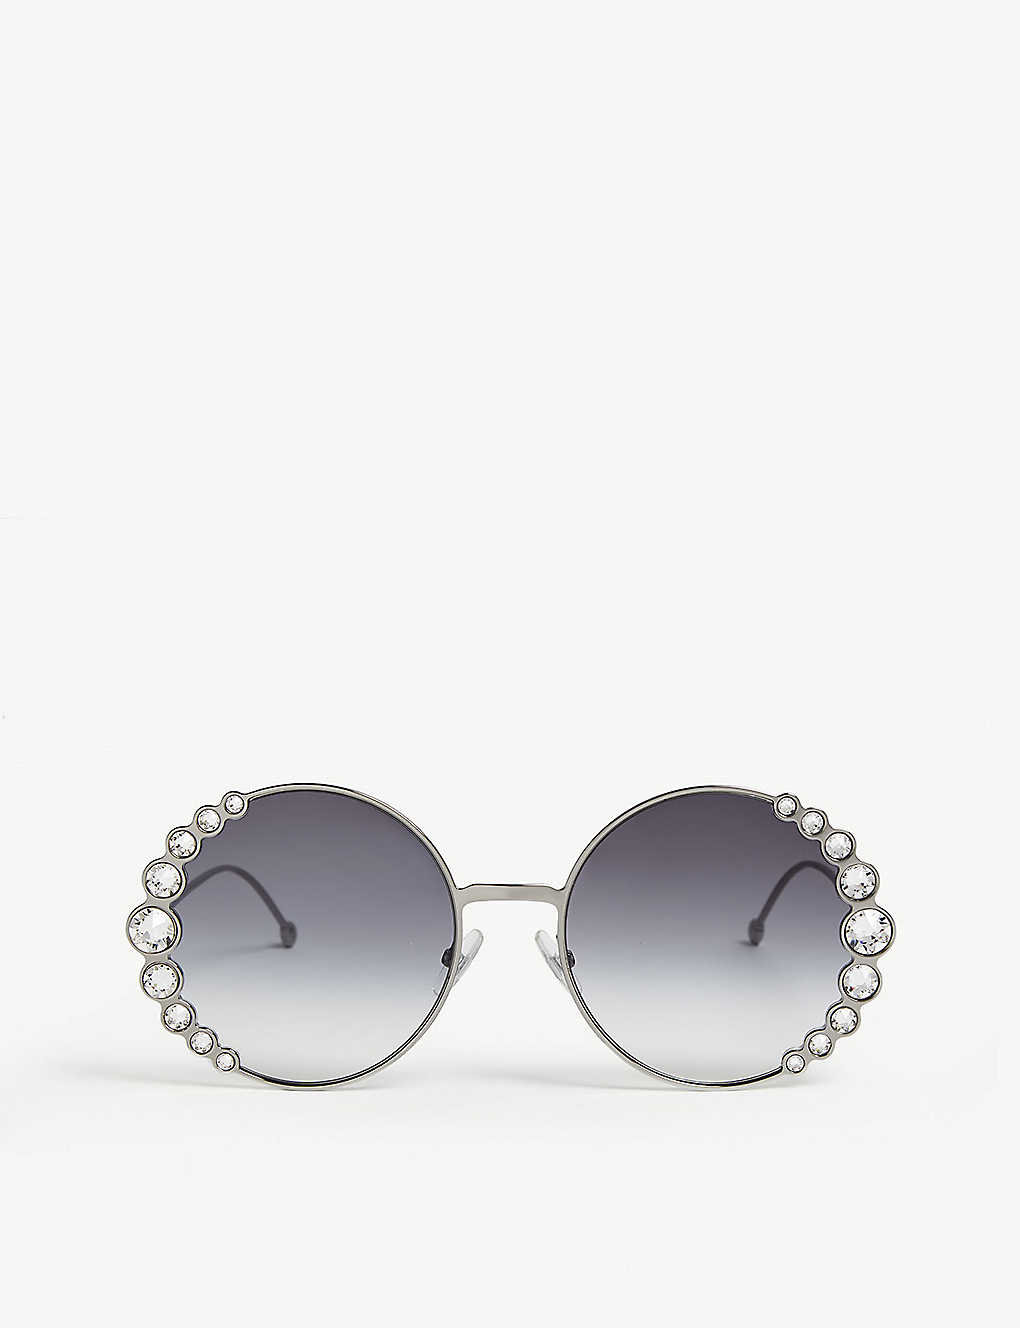 5c0af3d9fc FF0324 S Ribbons   Crystals round-frame sunglasses - Silver ...